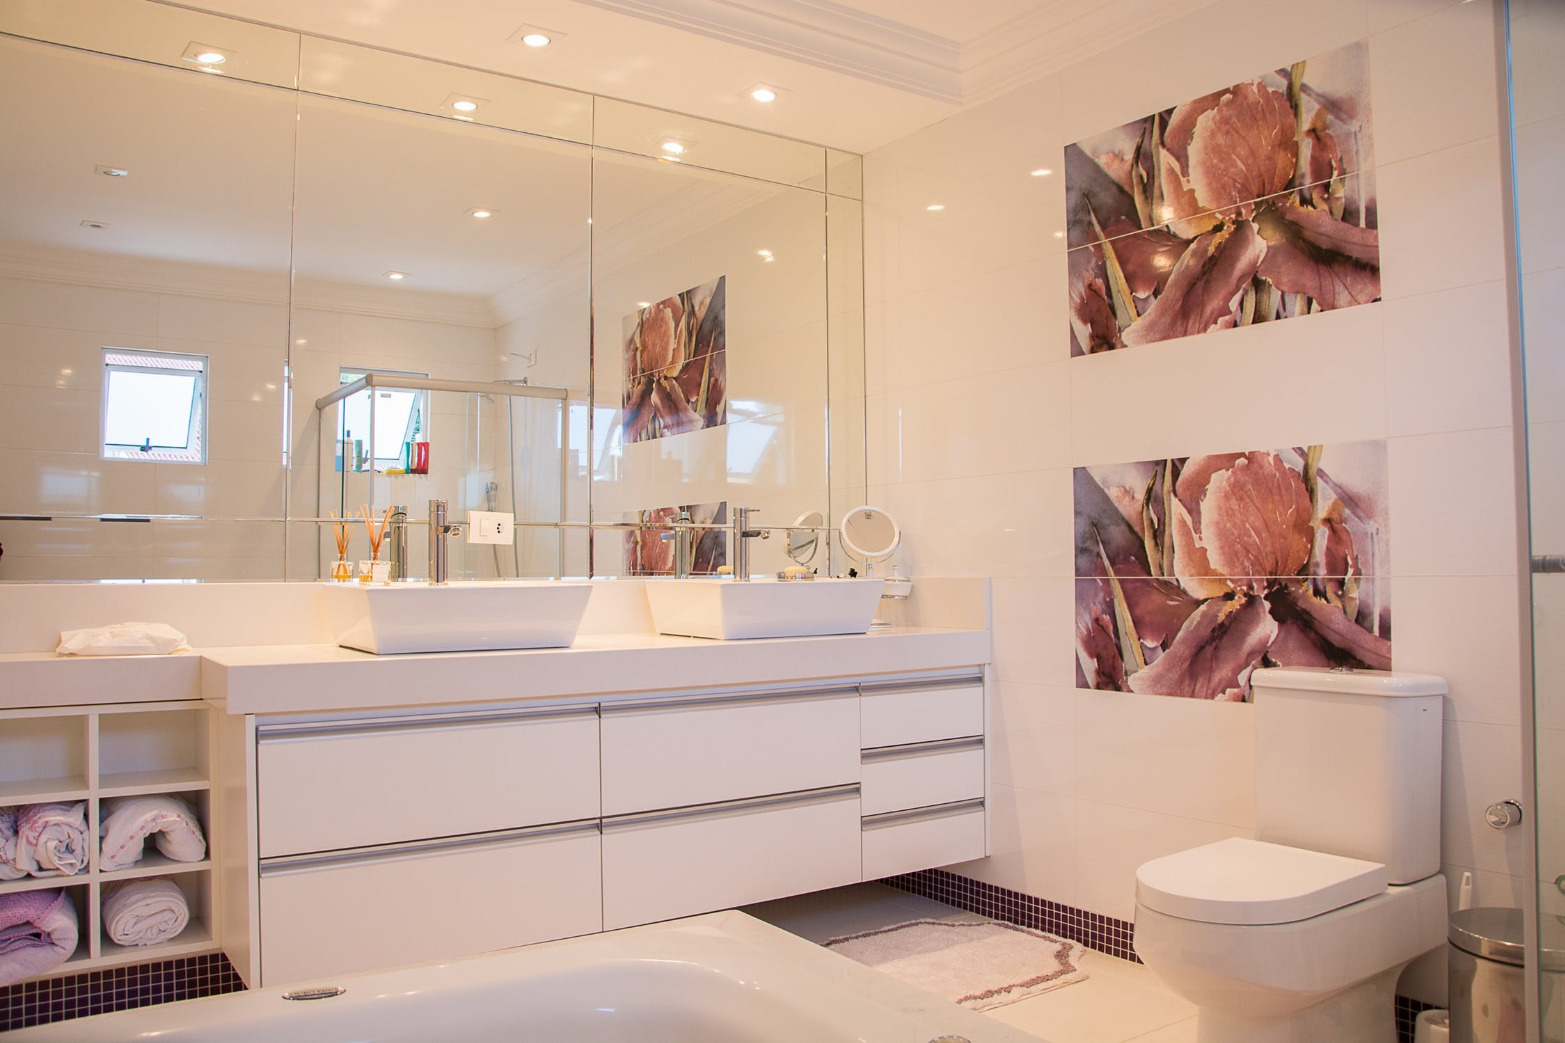 Decide on the Right Settings for Your Bathroom